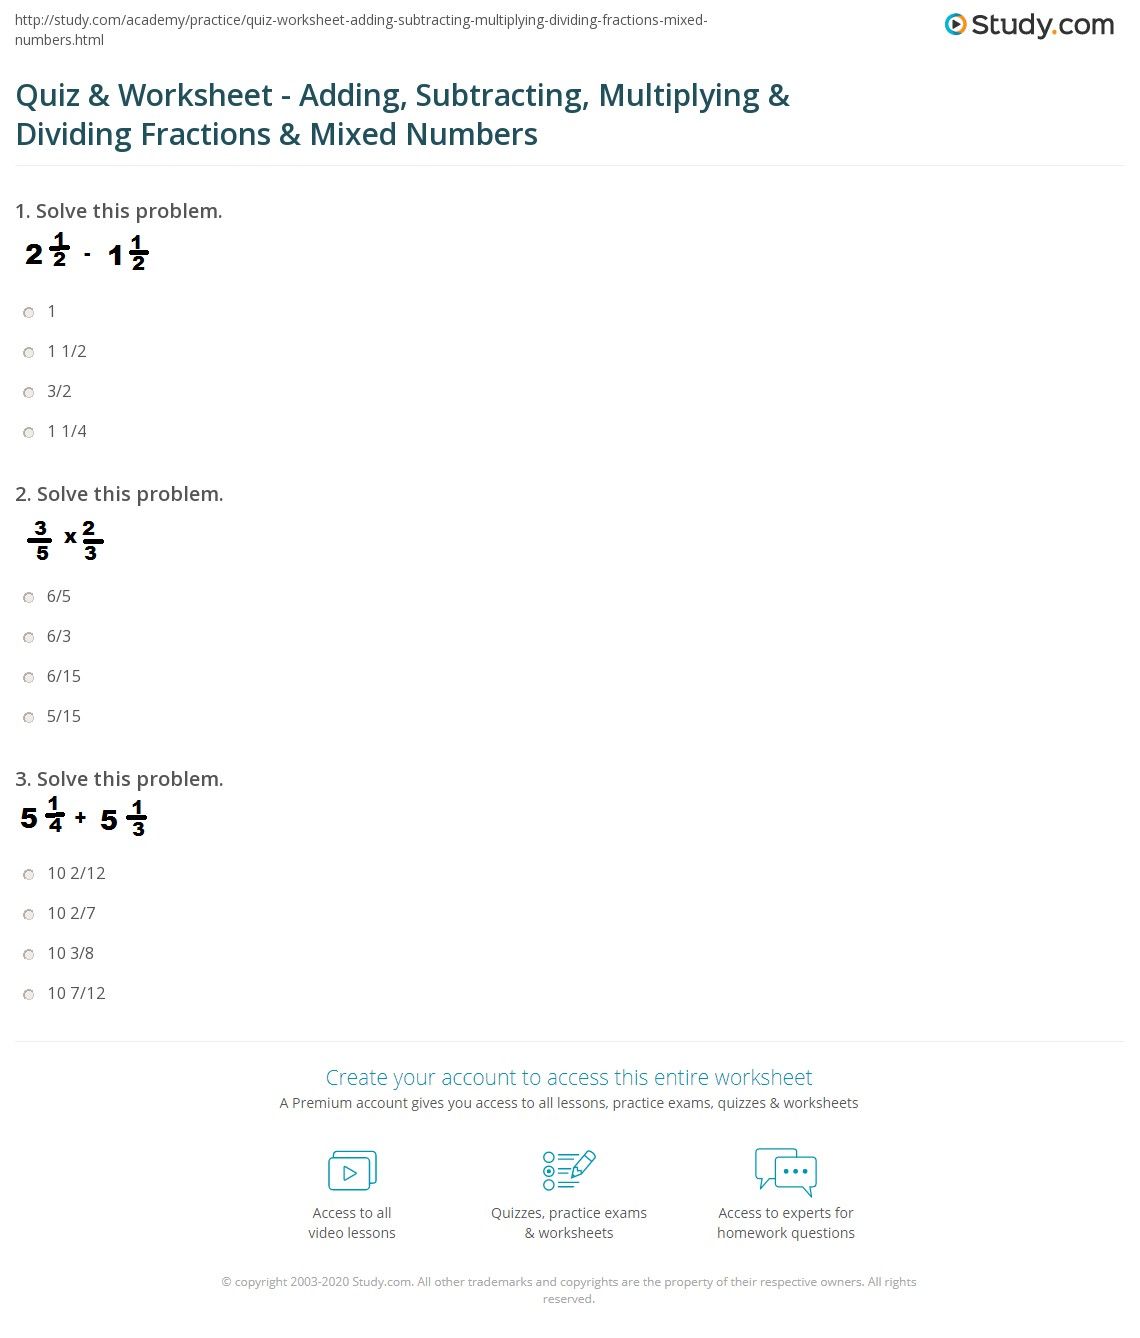 Adding and subtracting mixed fractions word problems worksheets